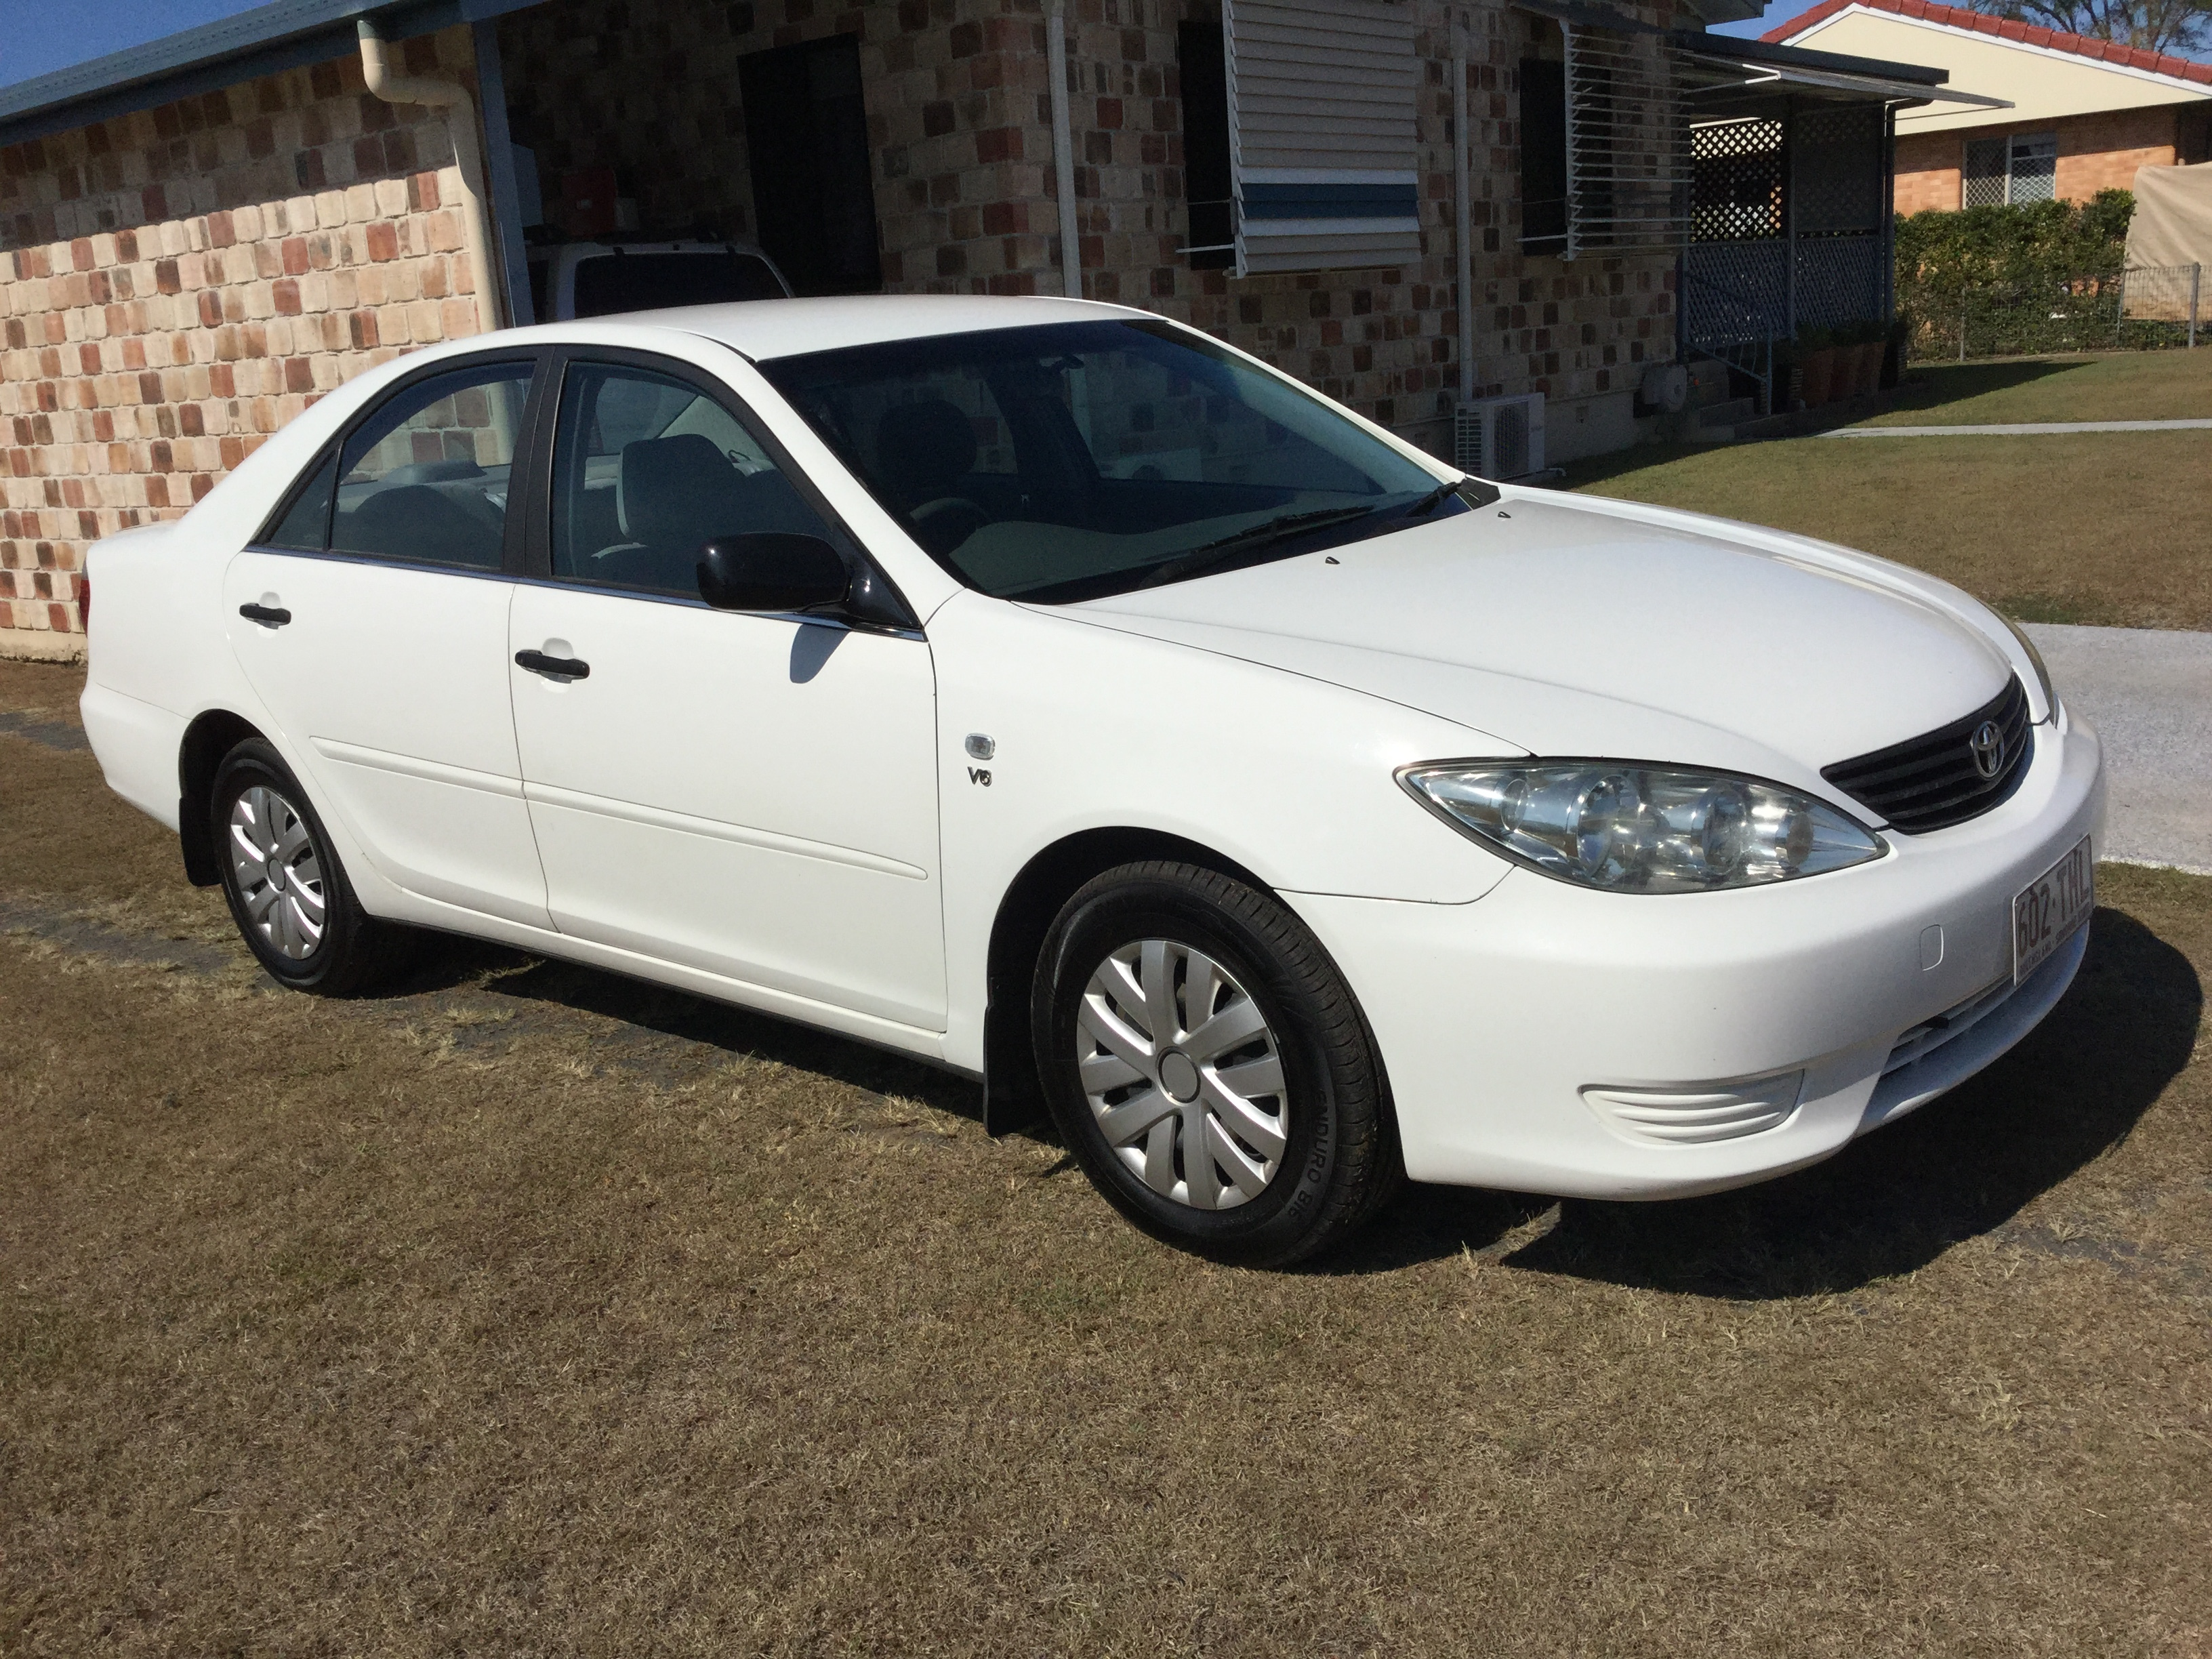 Altise sedan, V6 auto in good condition.  RWC